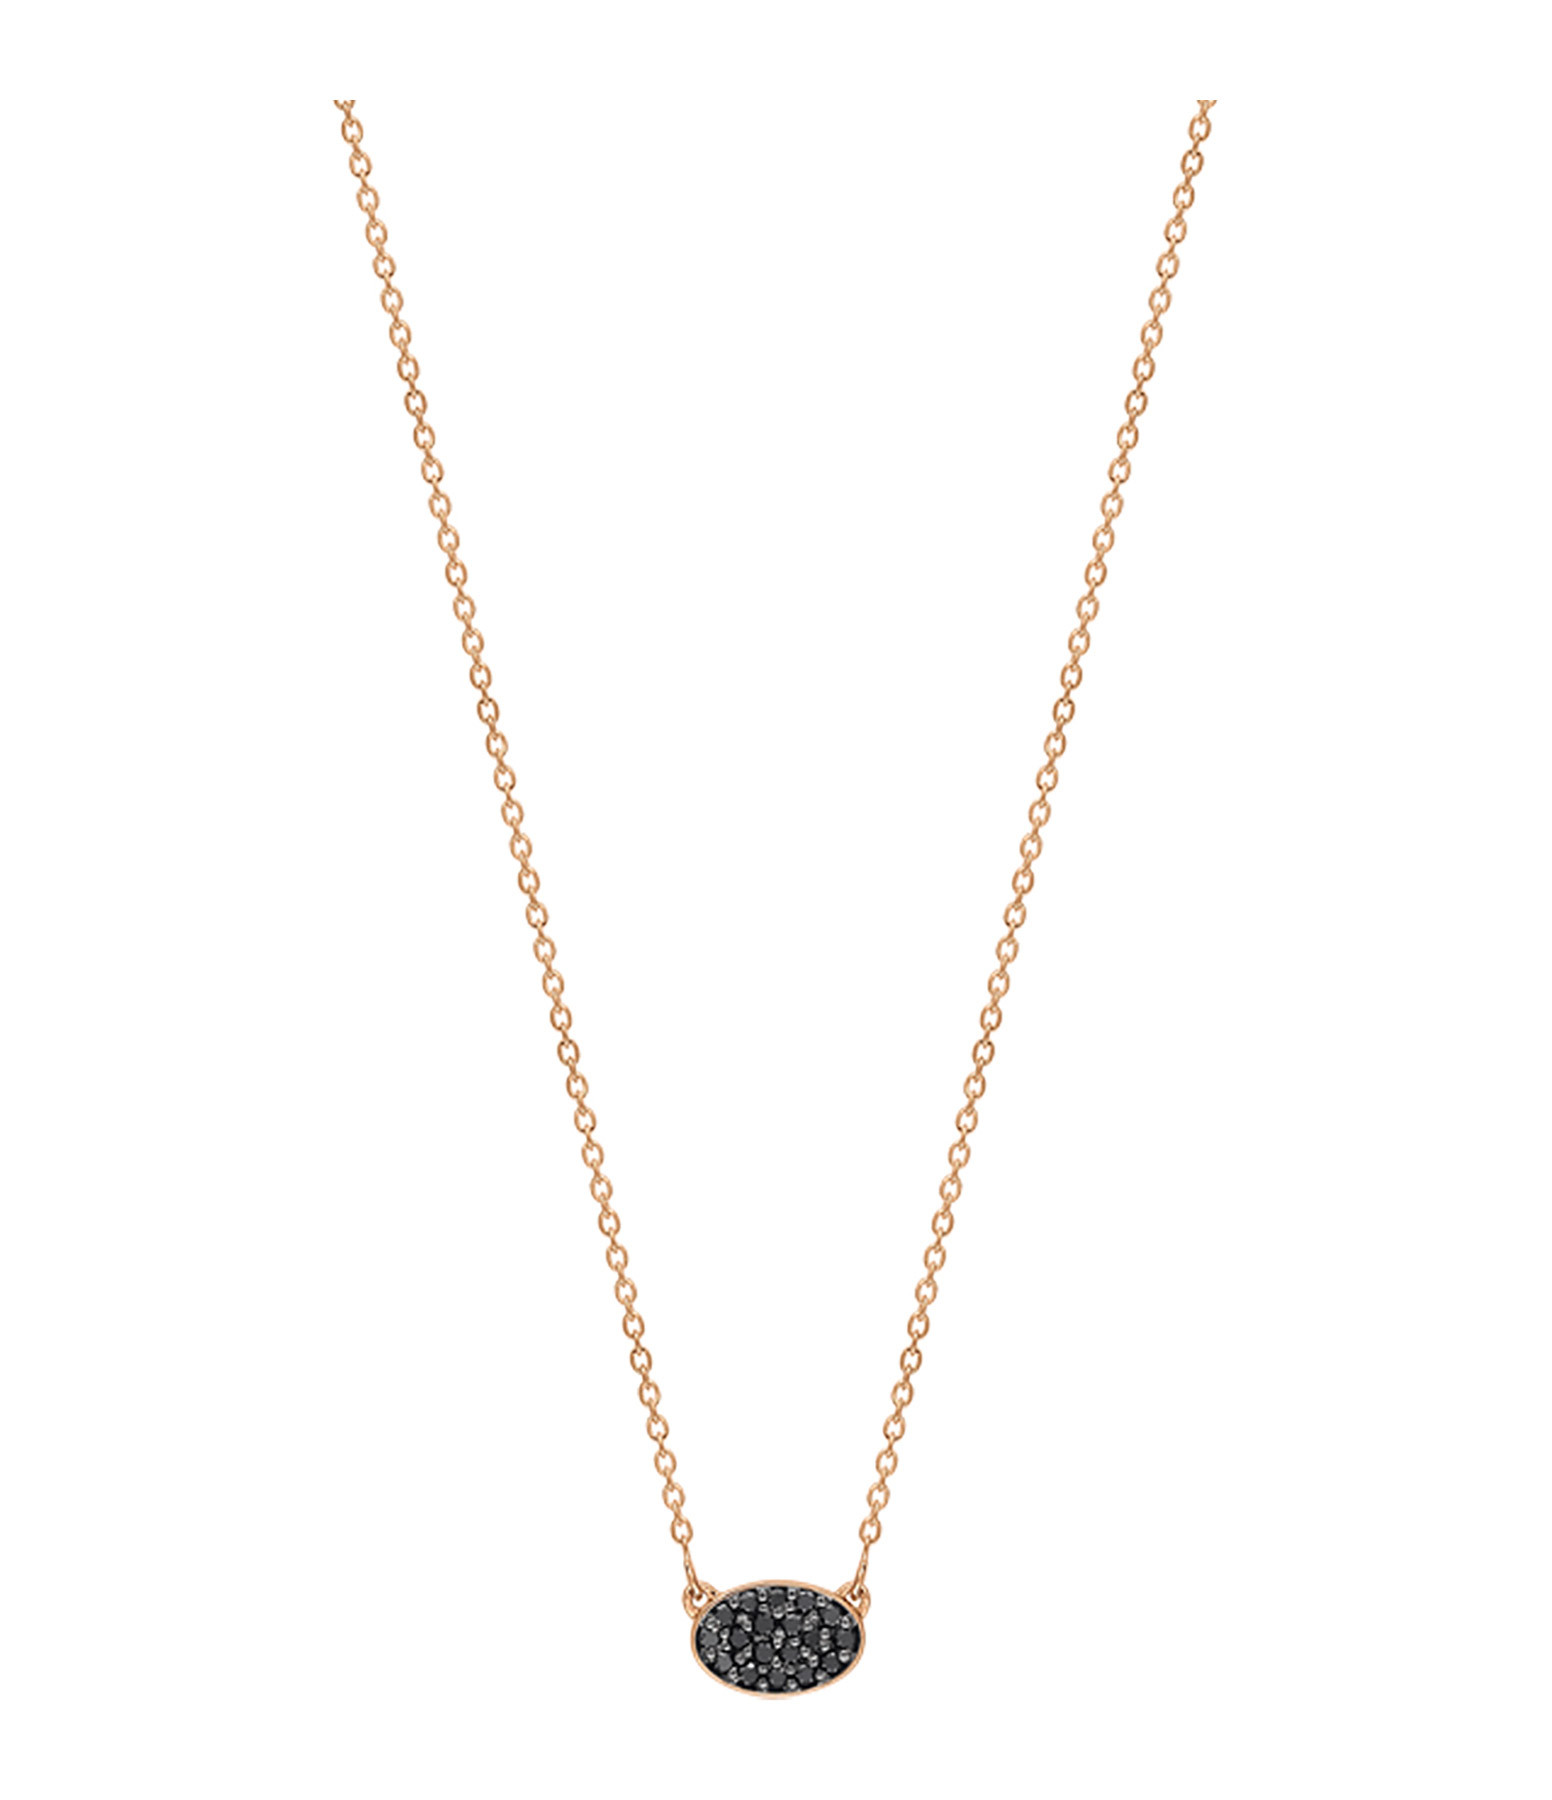 GINETTE_NY - Collier Sequin Mini Or Rose Diamants Noirs